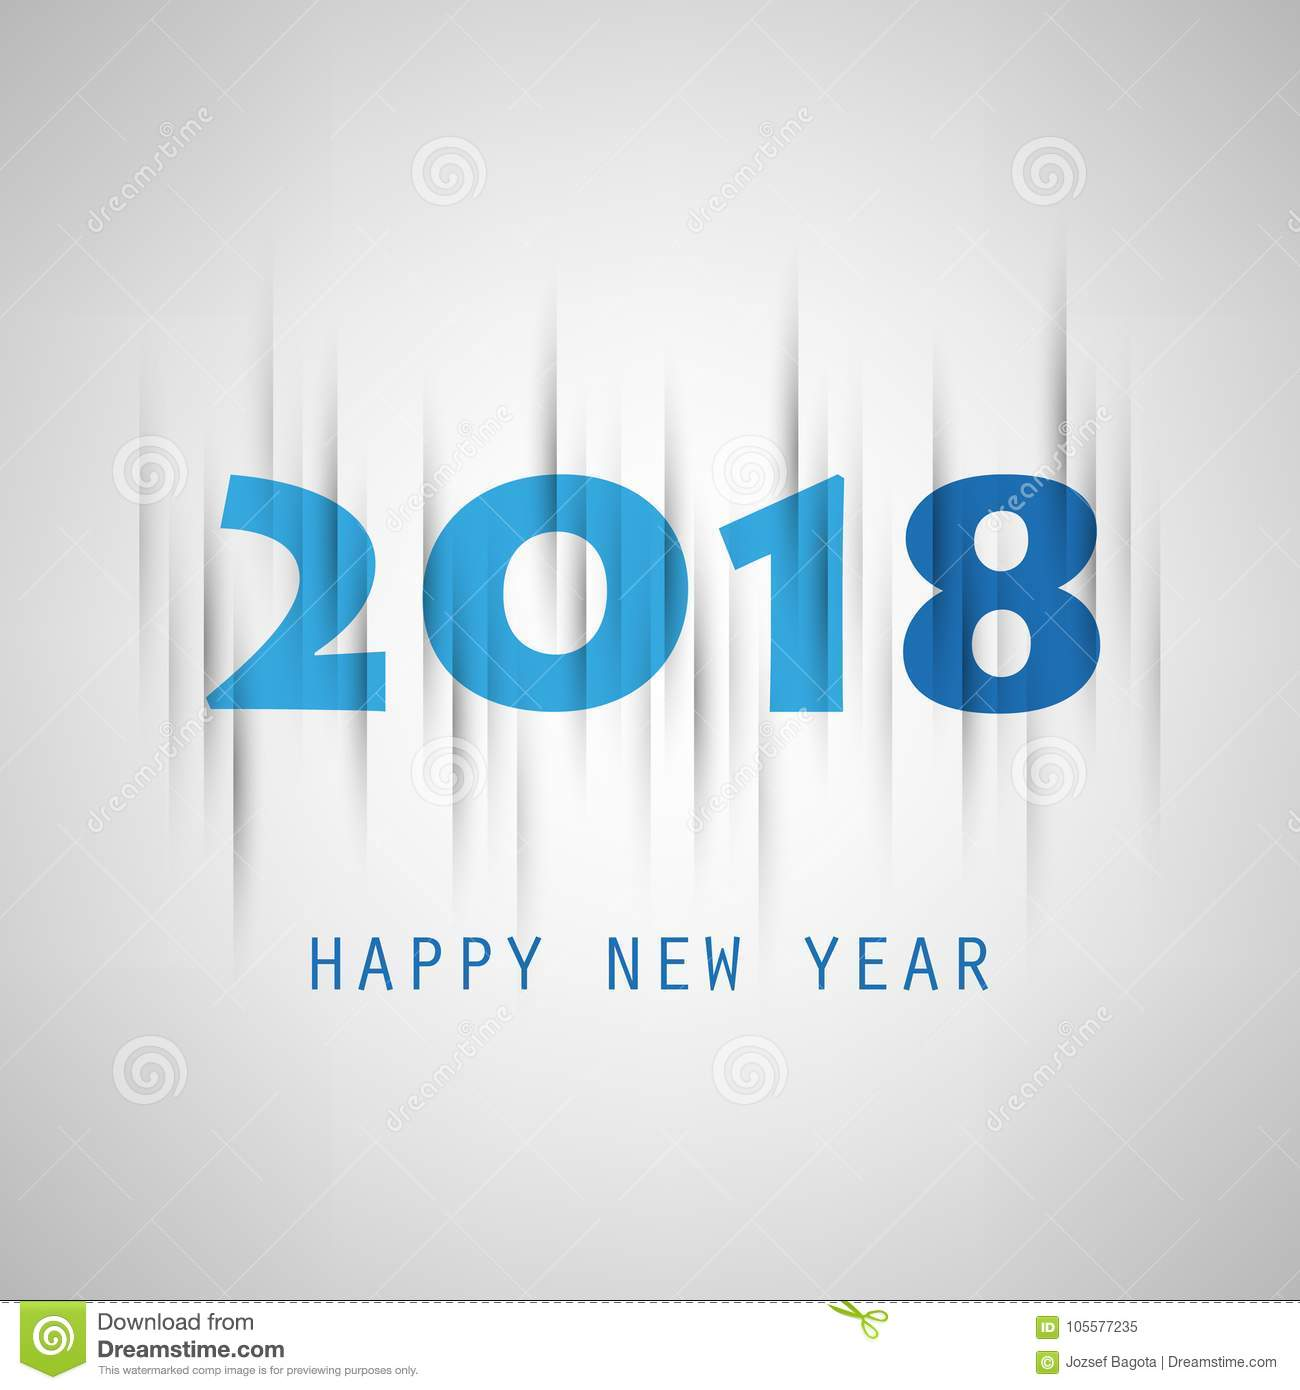 simple grey and blue new year card cover or background design template 2018